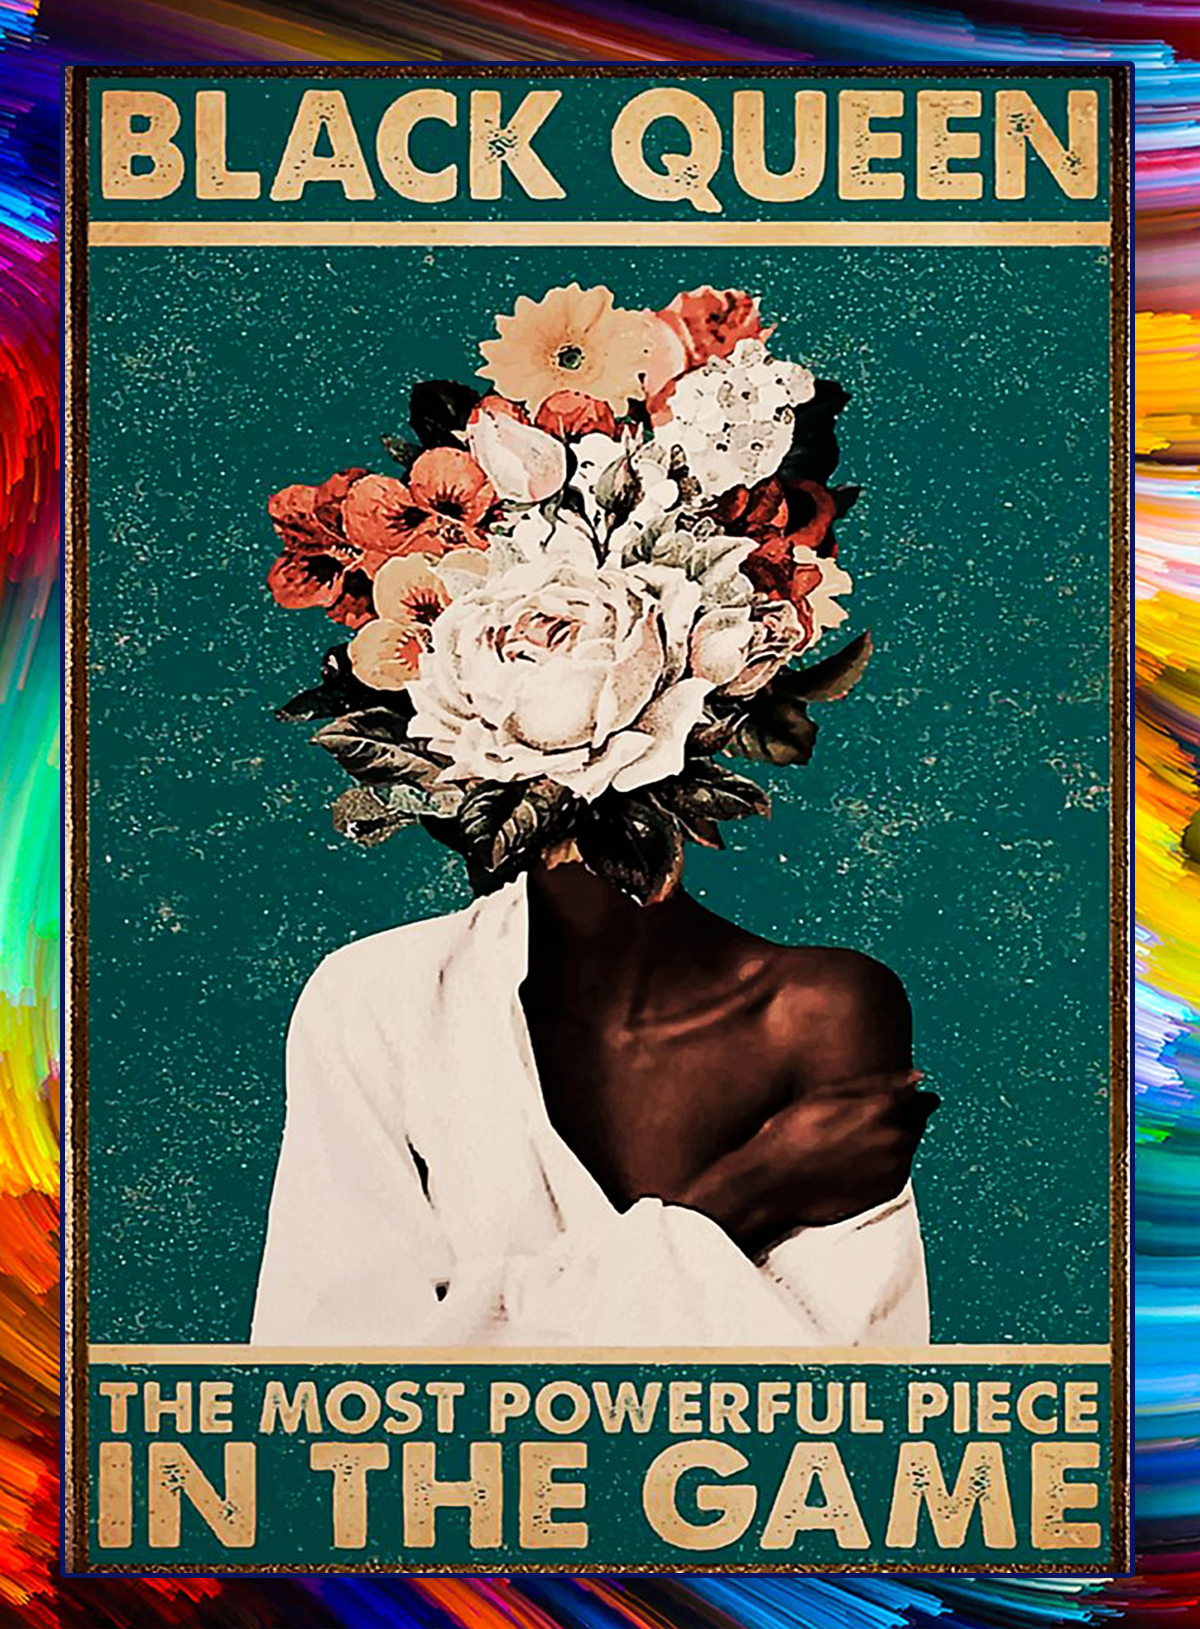 Pot head black queen the most powerful piece in the game poster - A4